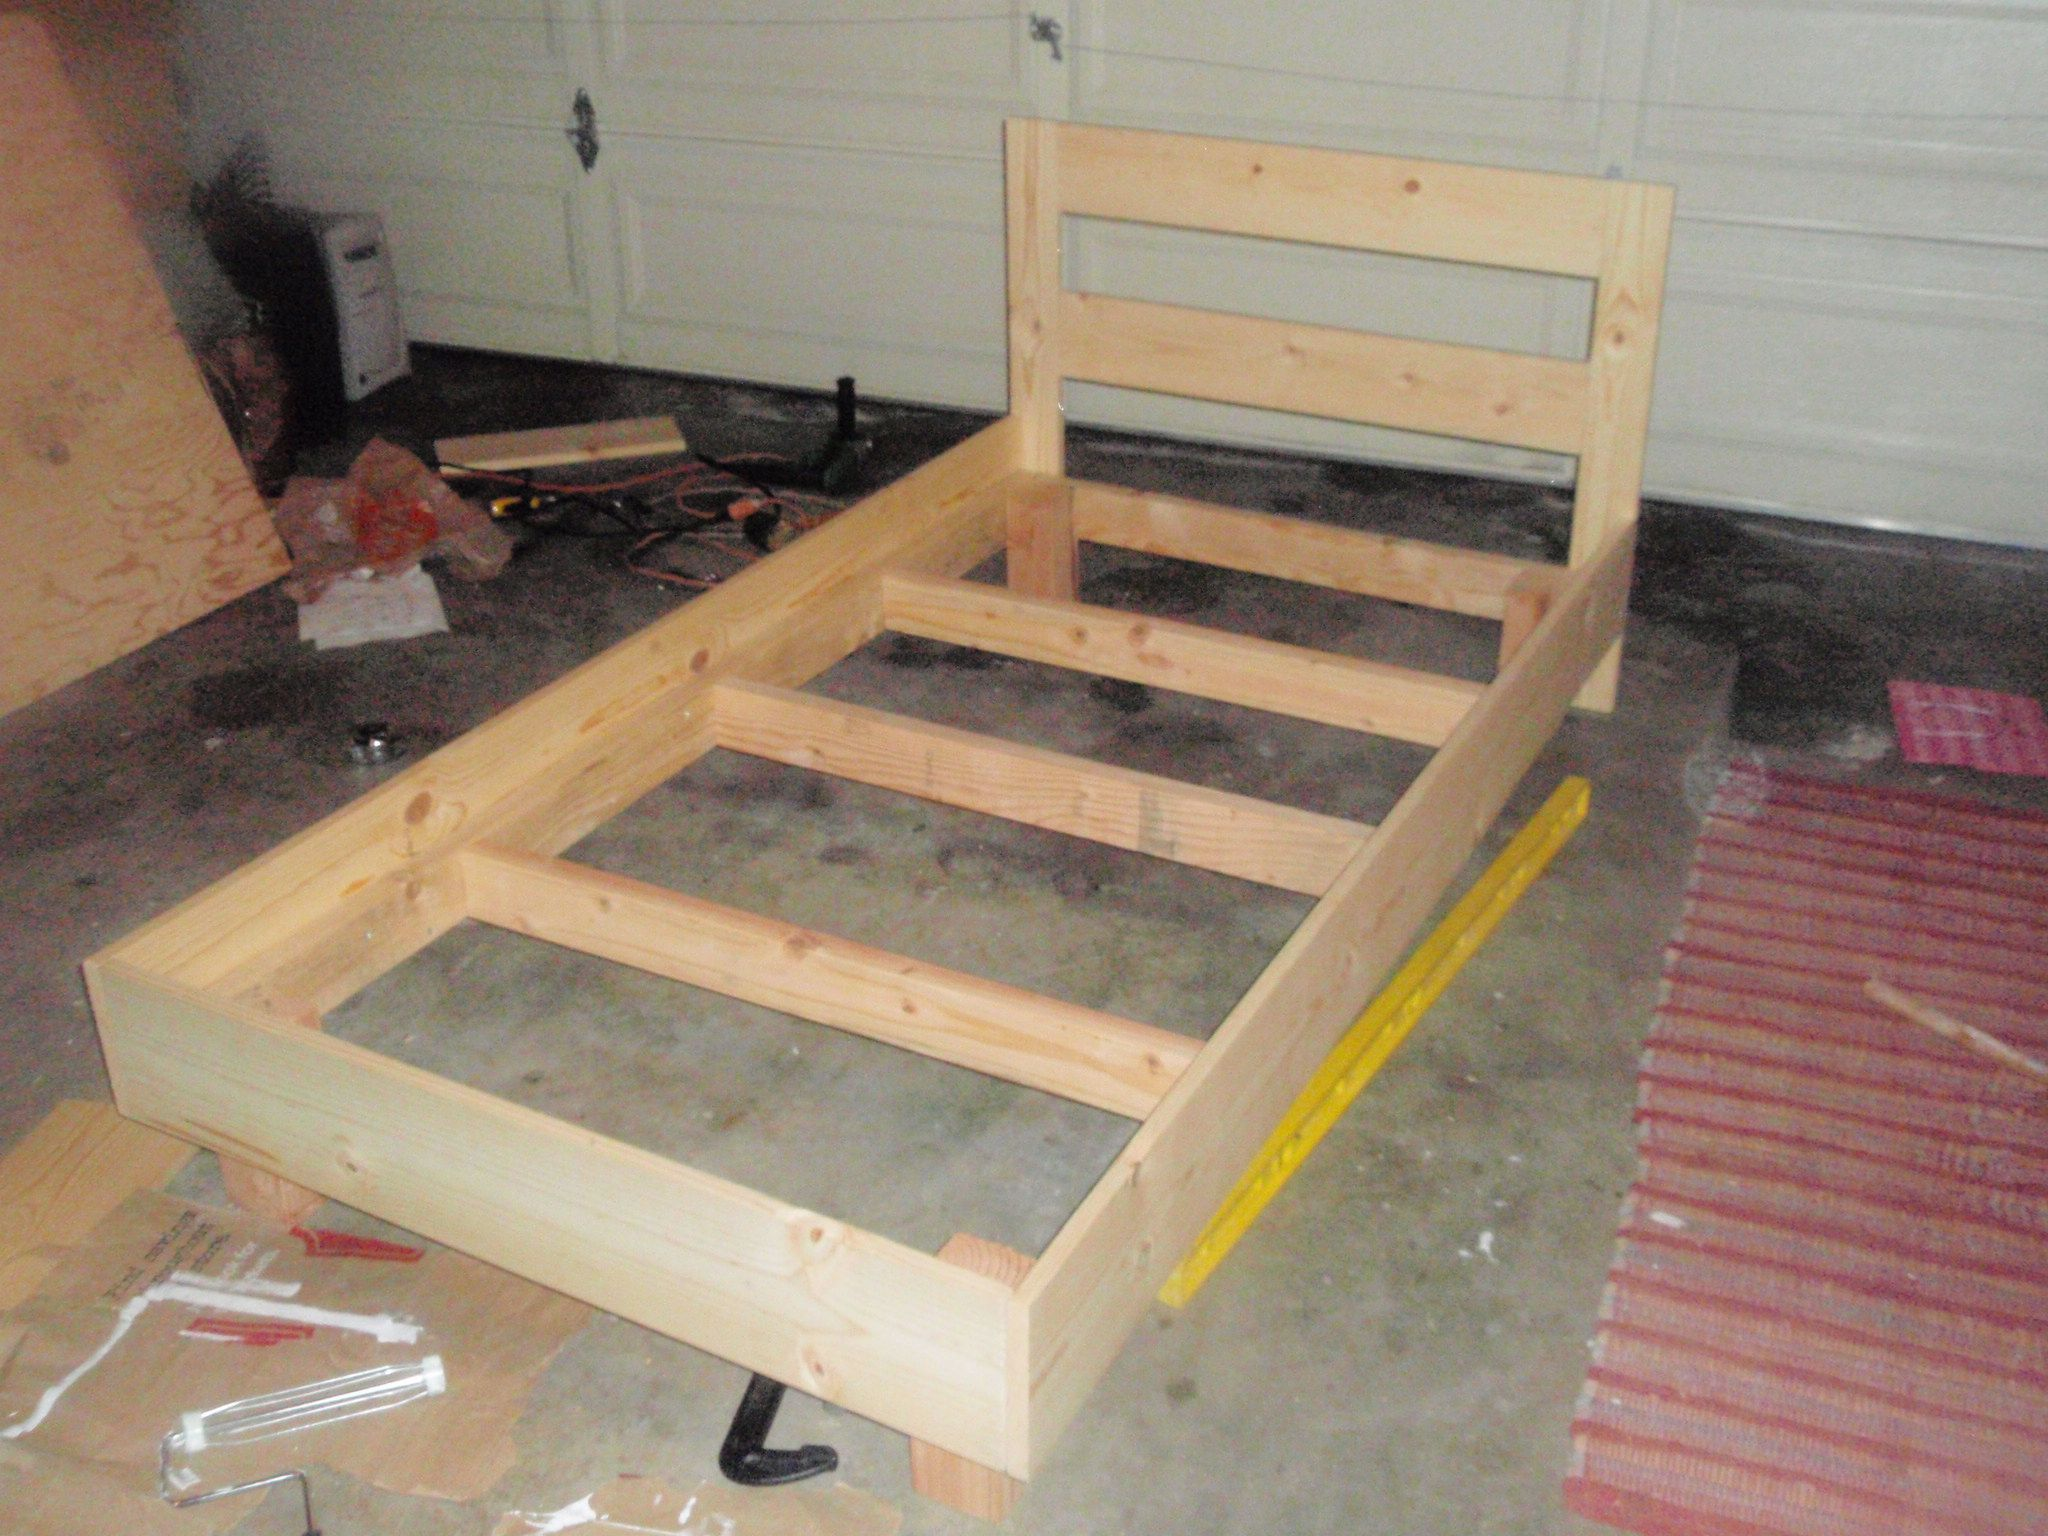 Wooden bed frame ideas - How To Build A Twin Bed Frame Beds Designs